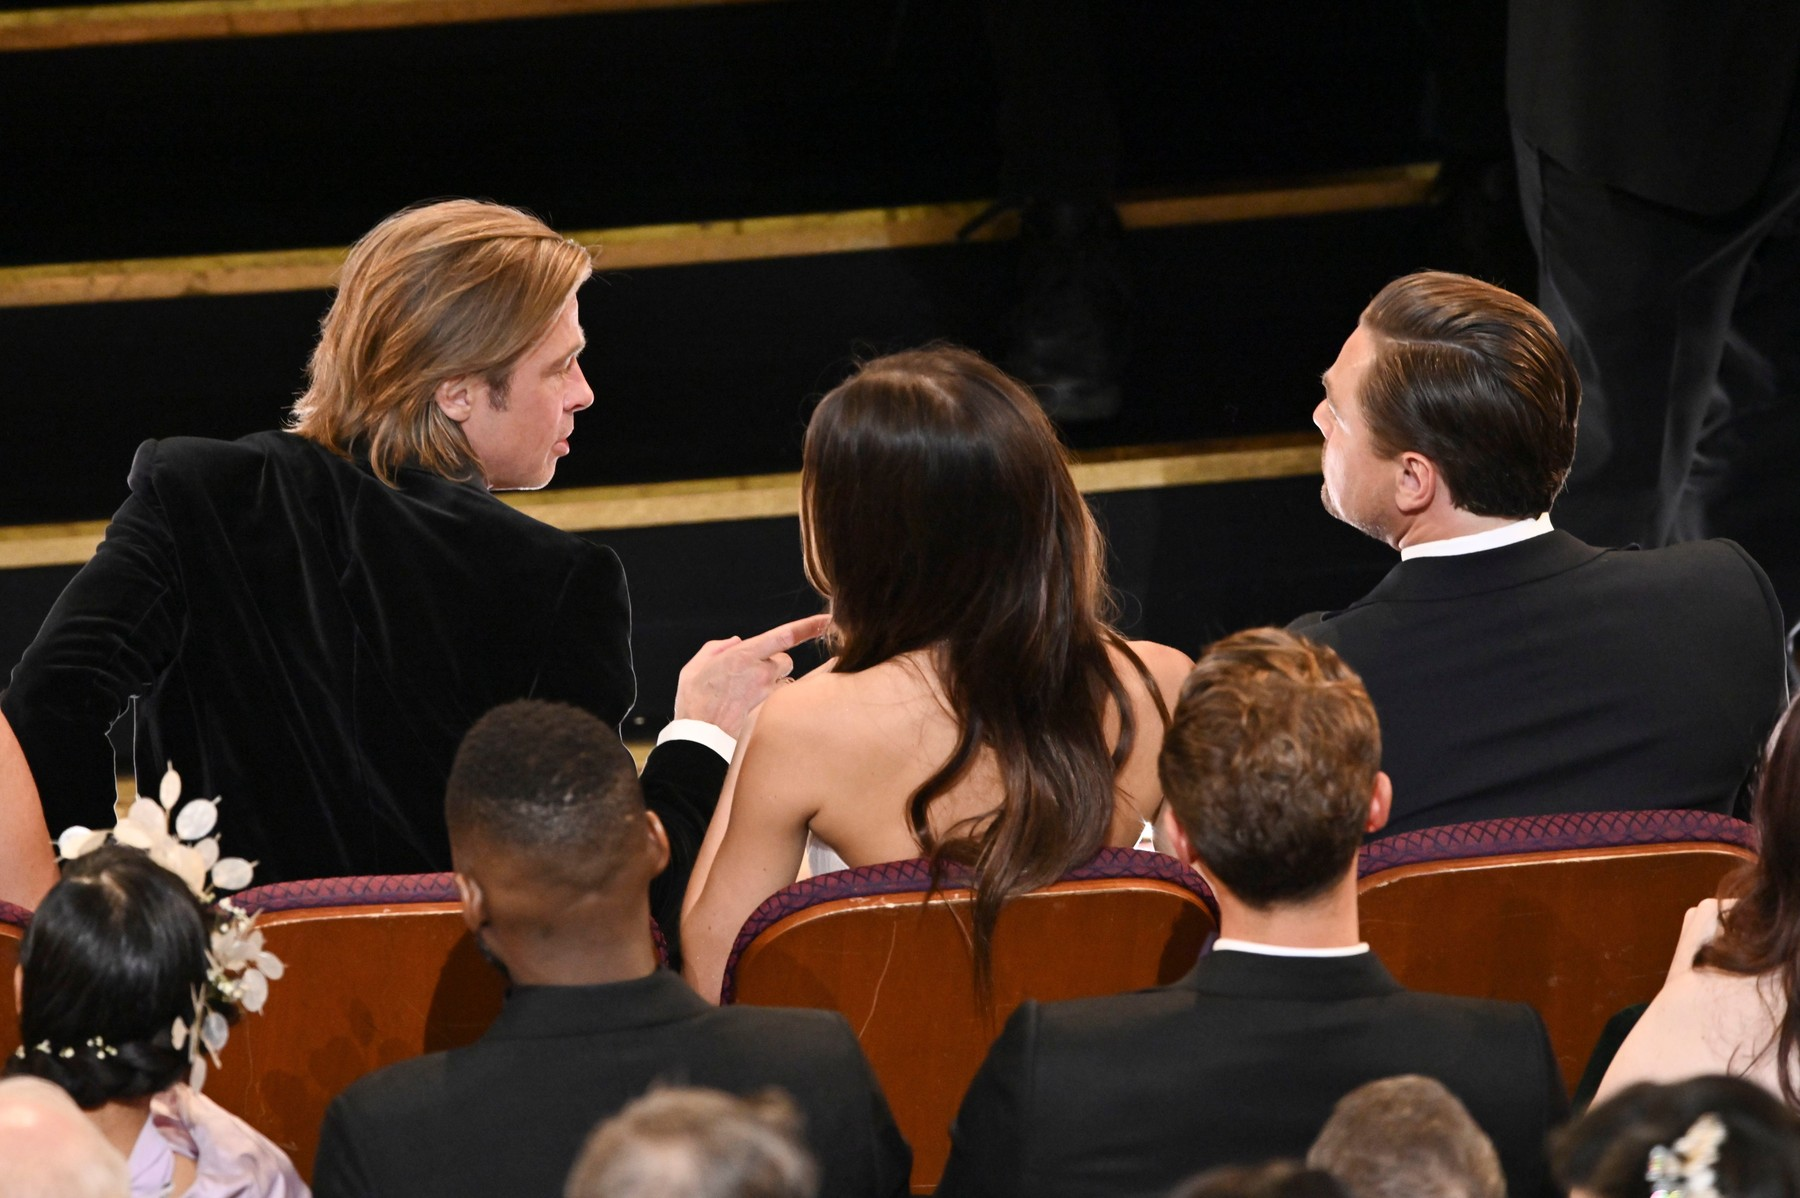 Brad Pitt, Camila Morrone and Leonardo DiCaprio 92nd Annual Academy Awards, Show, Los Angeles, USA - 09 Feb 2020, Image: 497485851, License: Rights-managed, Restrictions: , Model Release: no, Credit line: Rob Latour / Shutterstock Editorial / Profimedia